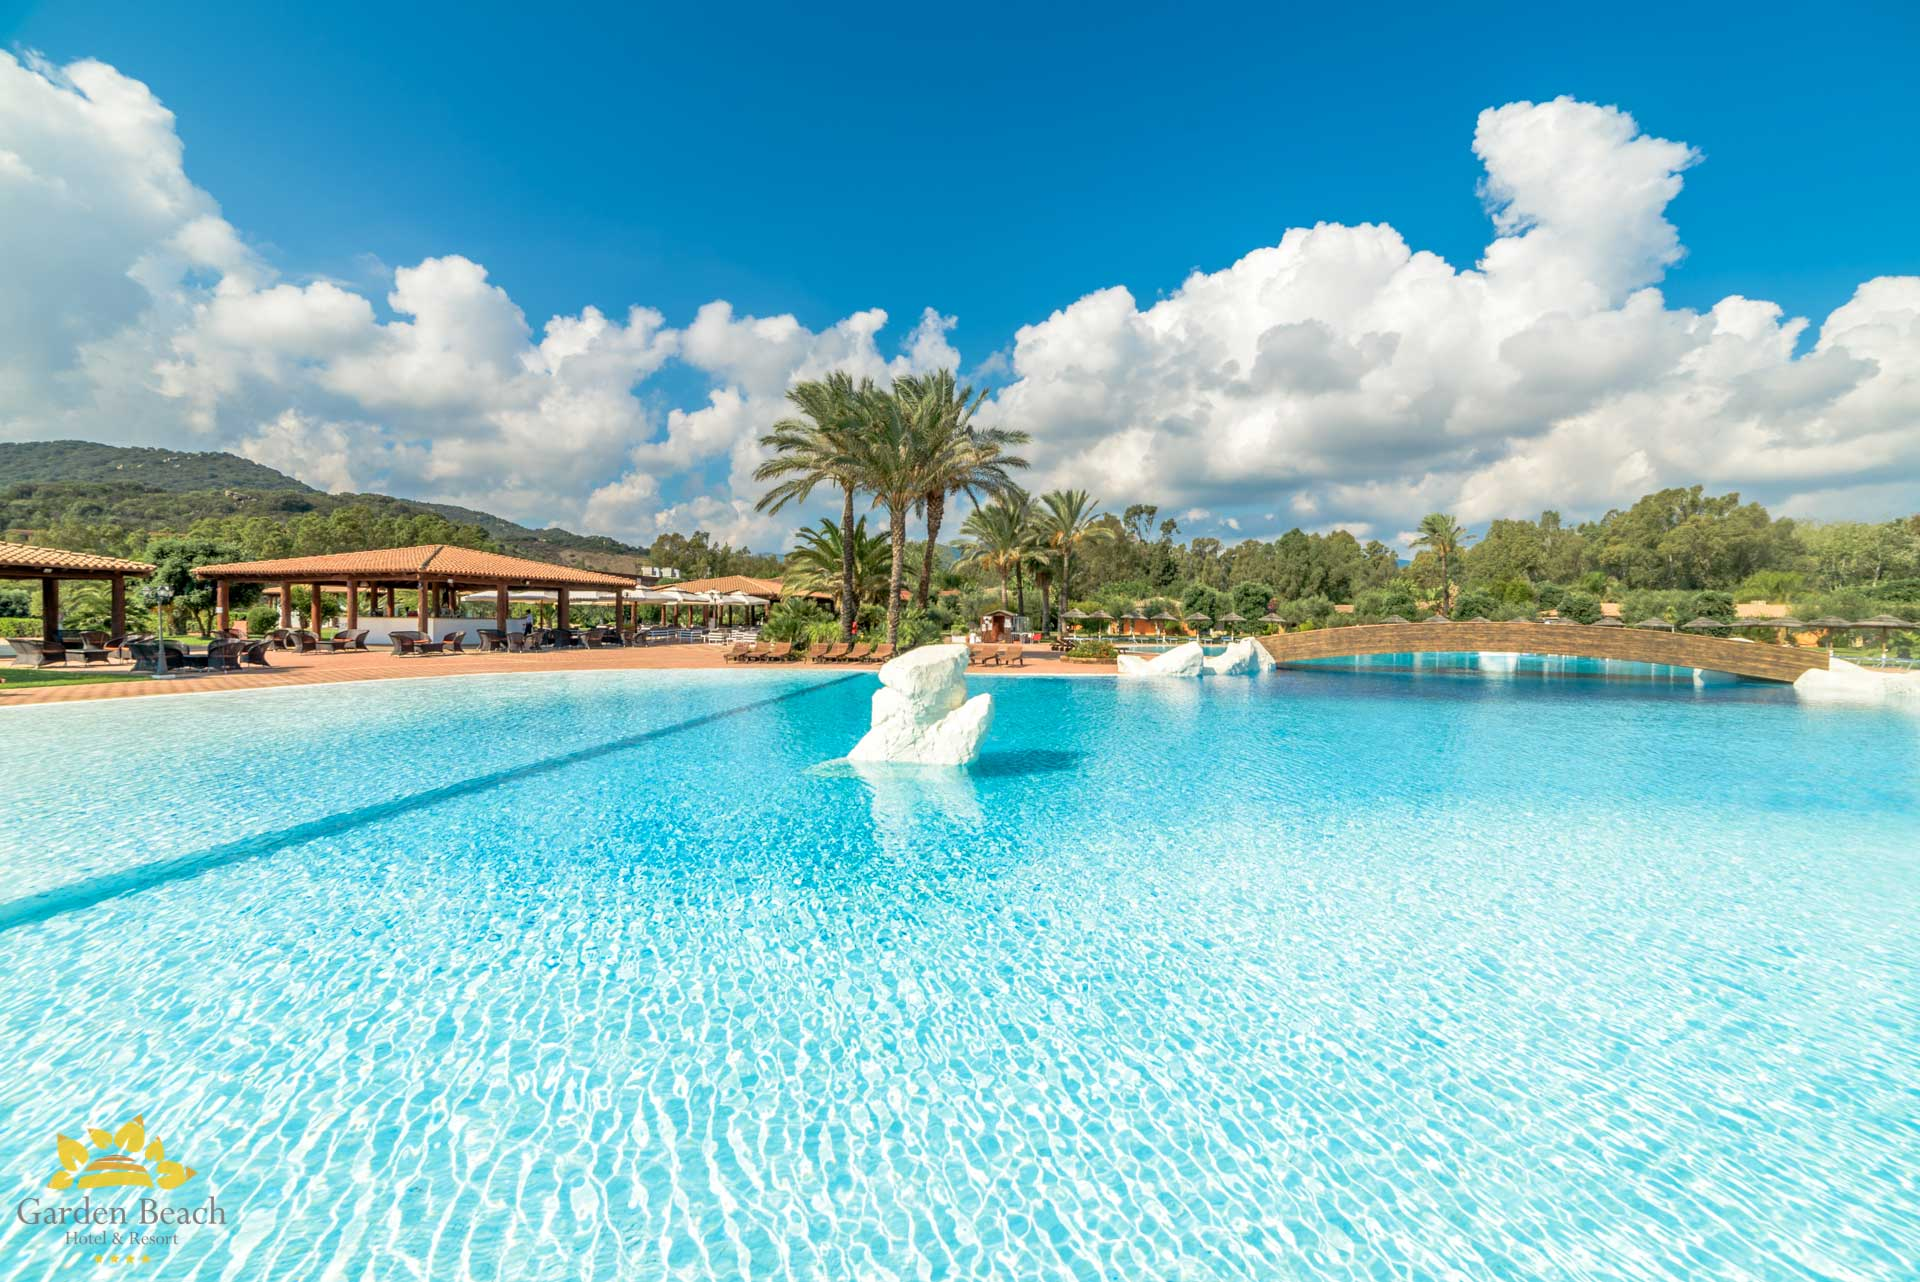 hotel-garden-beach---swimming-pool-grande-20